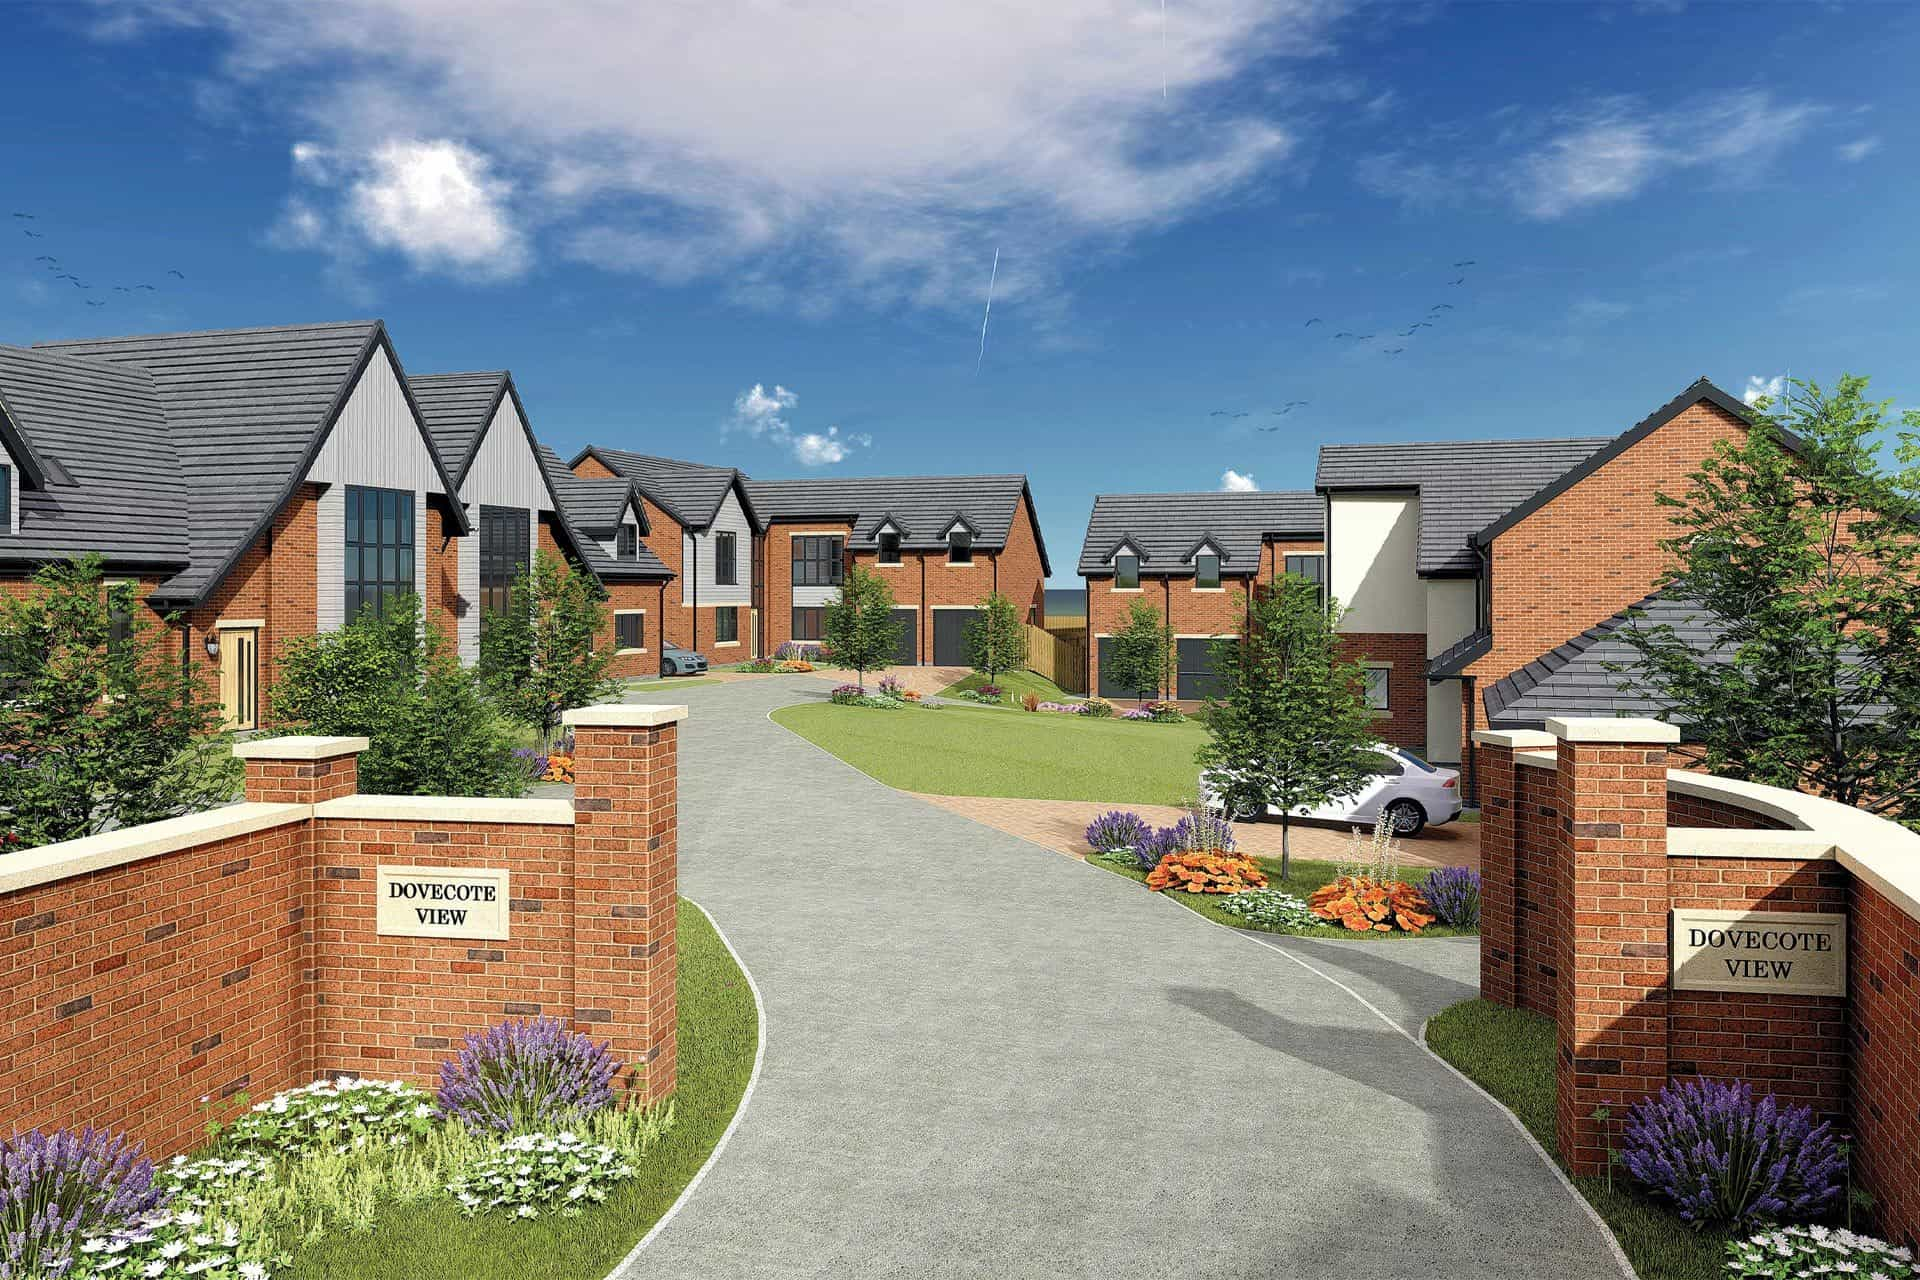 Swan Homes Dovecote View